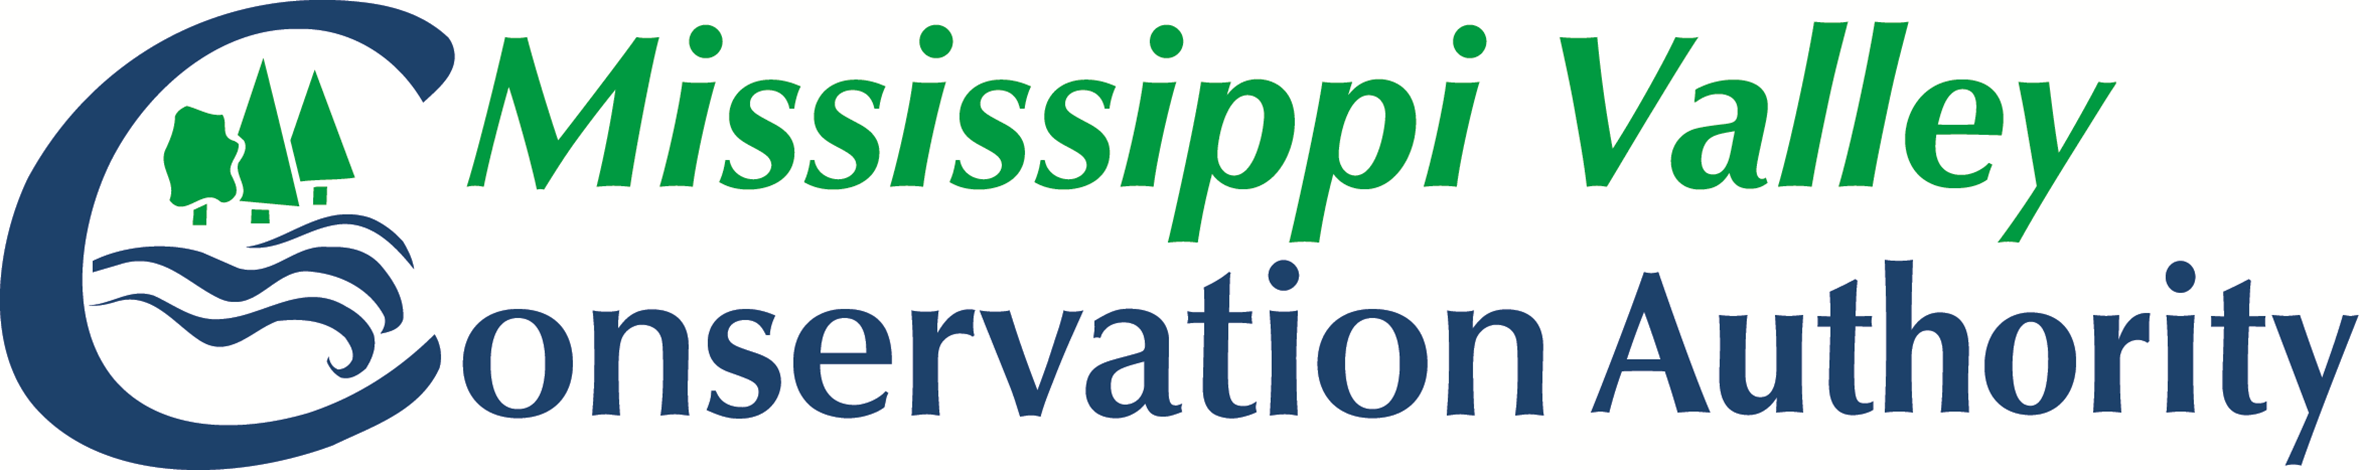 Mississippi Valley Conservation Authority